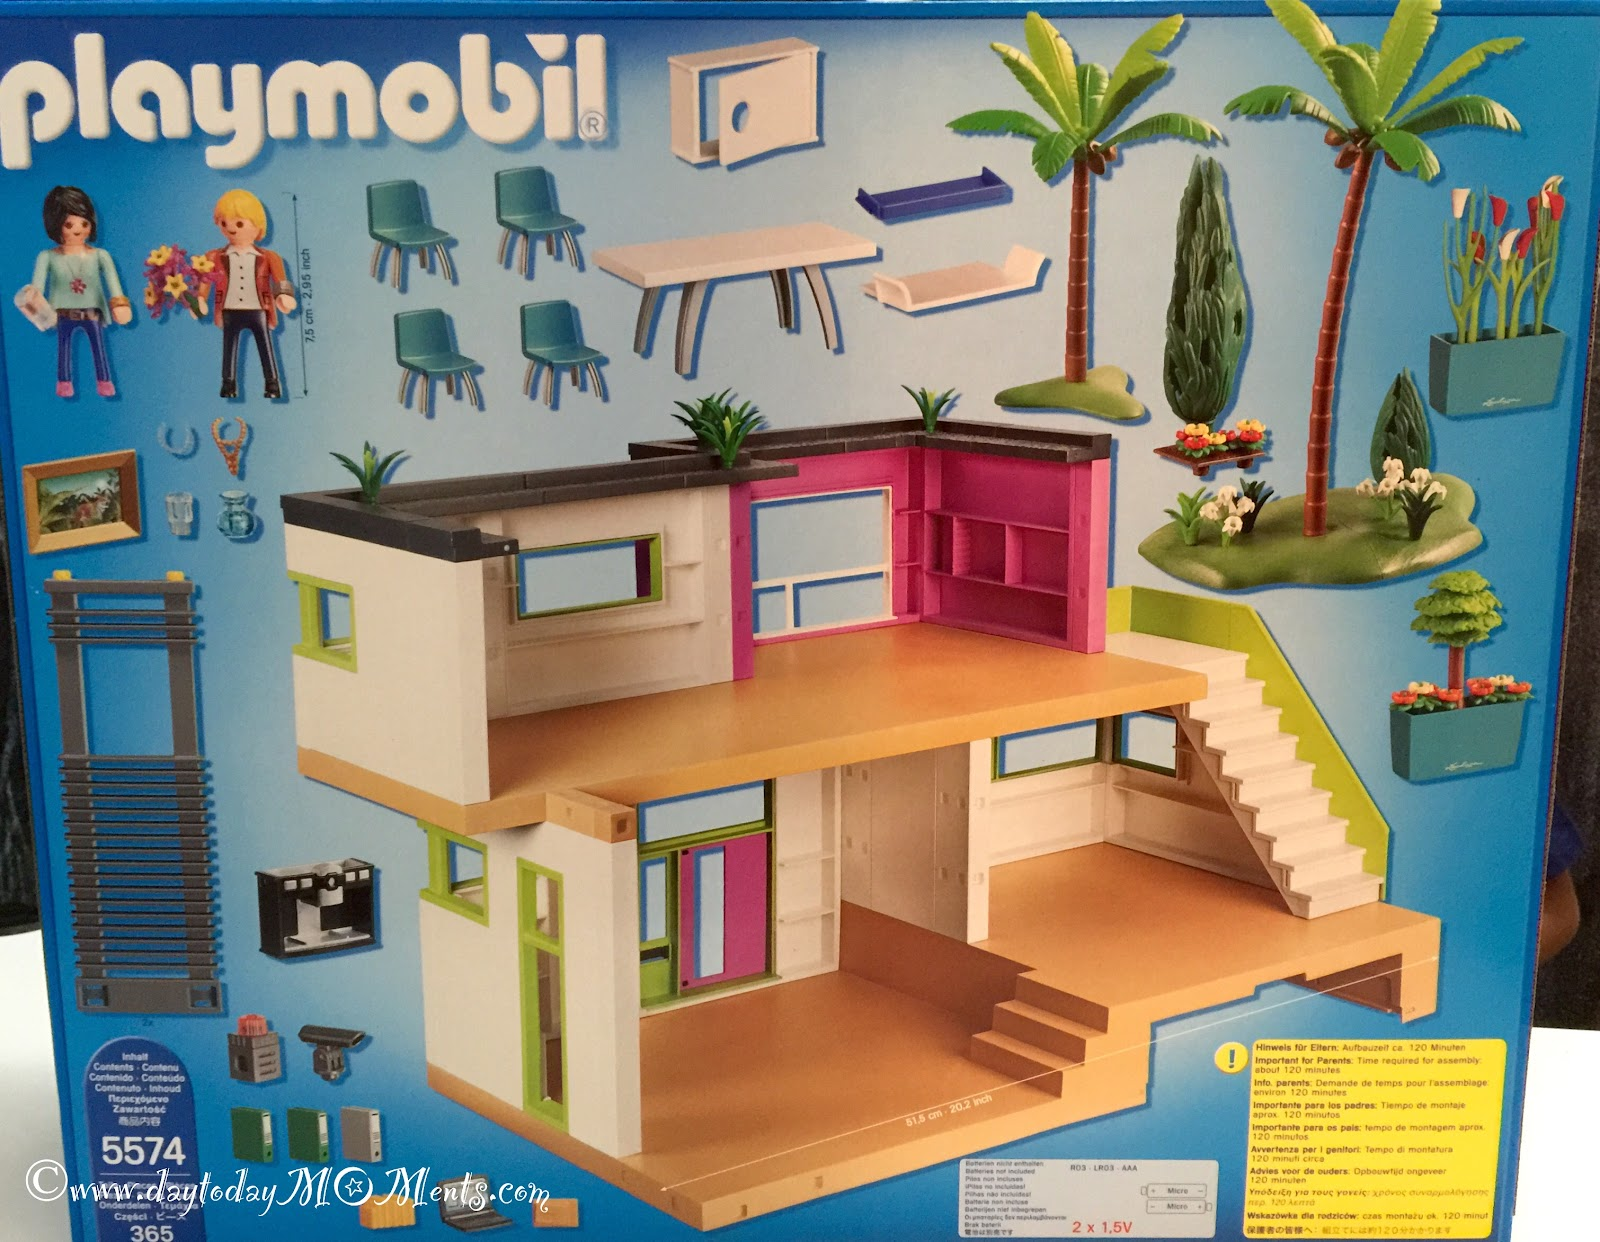 Day To Day Moments Playmobil 5574 Modern Luxury Mansion Building Set Imaginative Play More